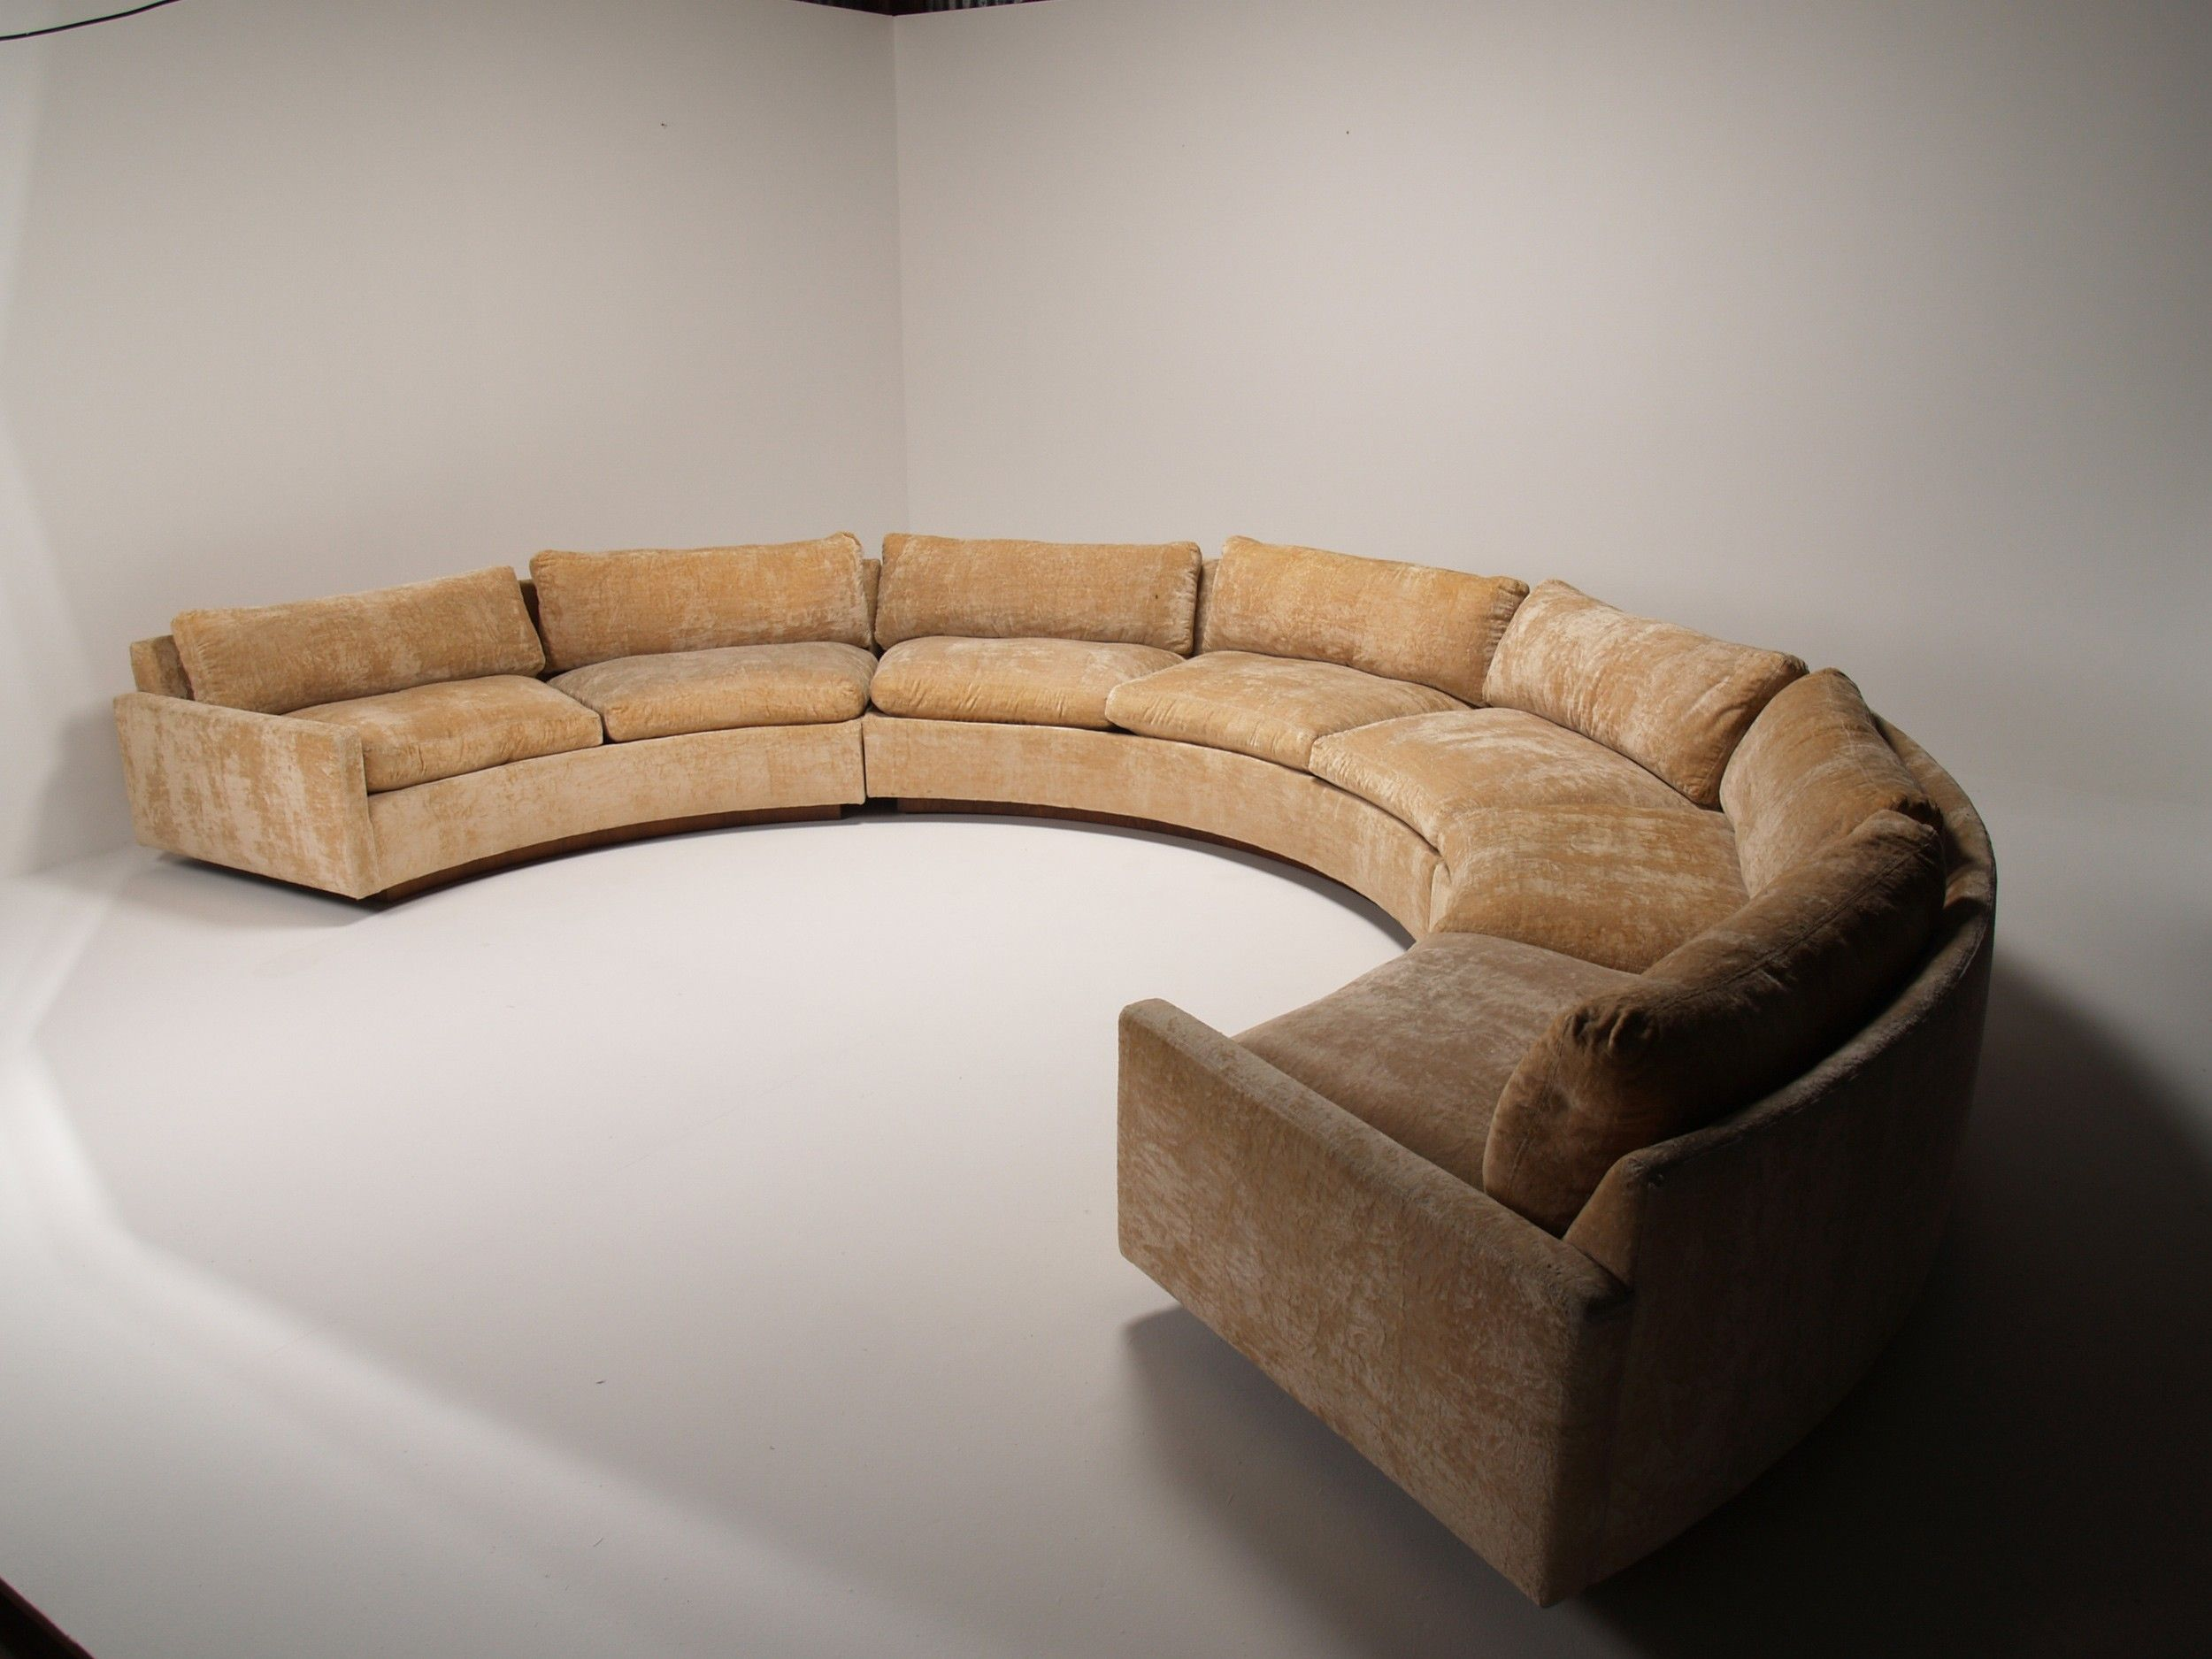 Curved Modern Sofa Of Awesome Tufted , Awesome Tufted 61